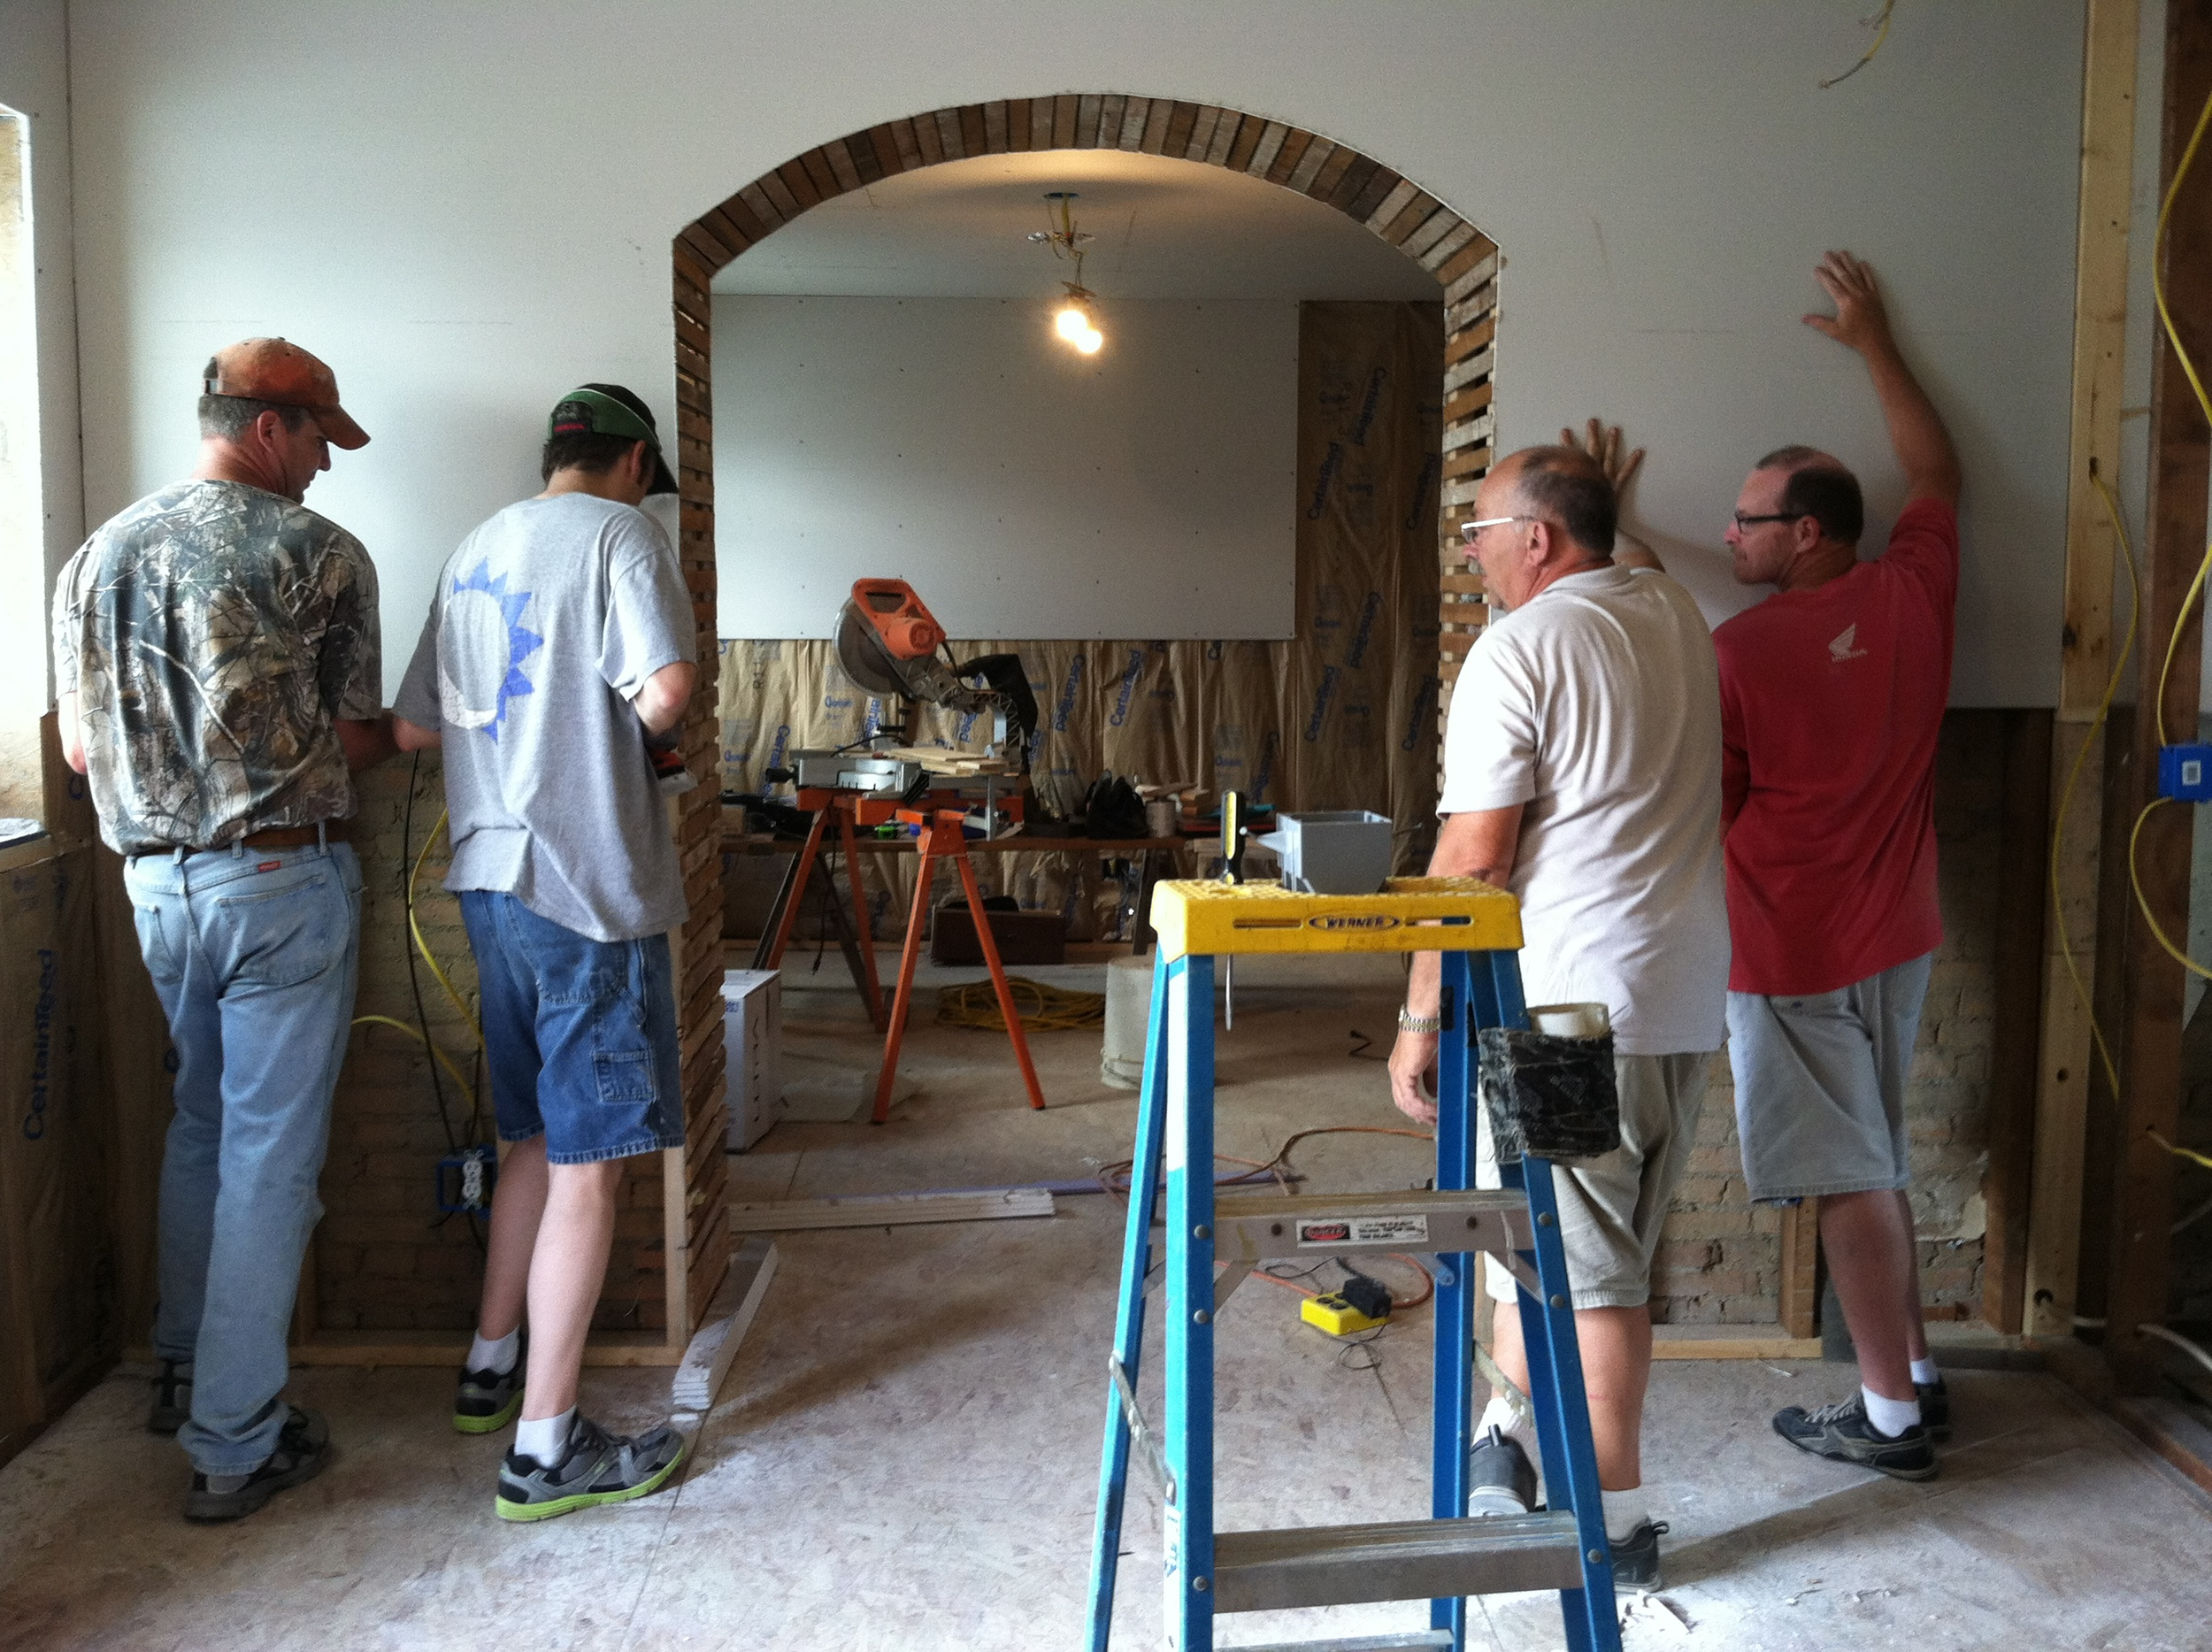 July 2013 - The Drywallers